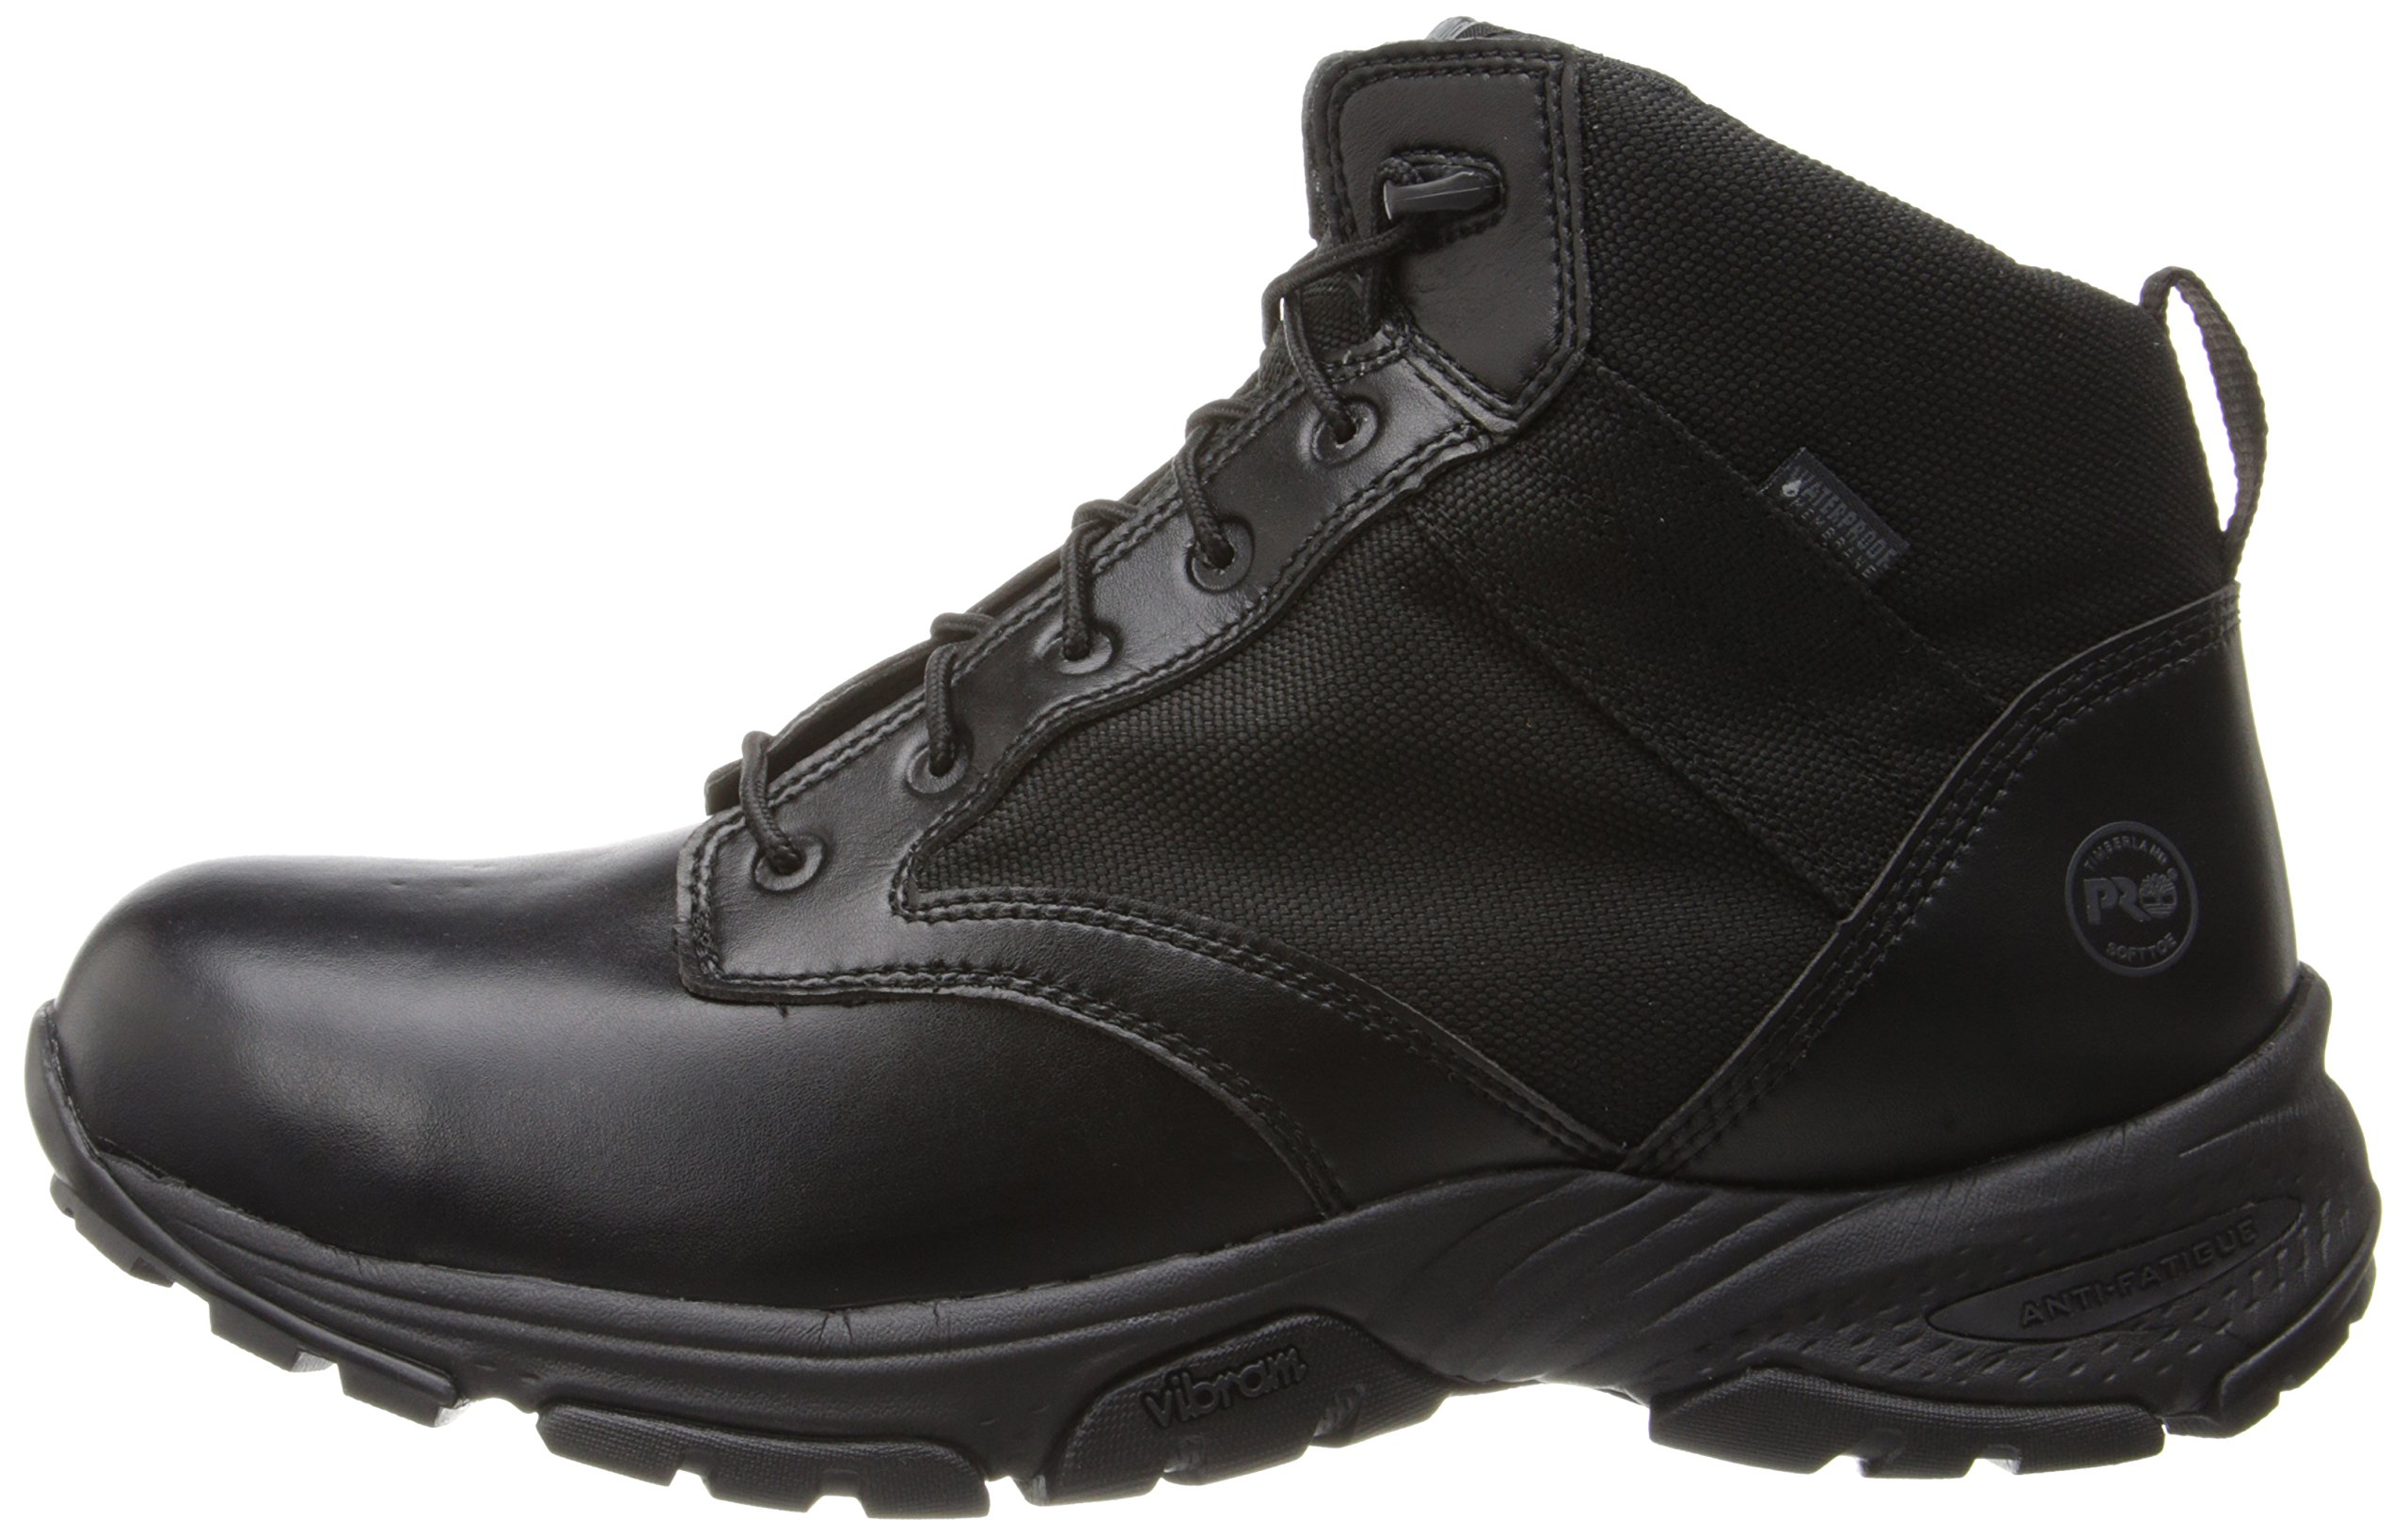 Timberland PRO Men's 5 Inch Valor Soft Toe Waterproof Duty Boot,Black Smooth With Textile,11.5 M US by Timberland PRO (Image #5)